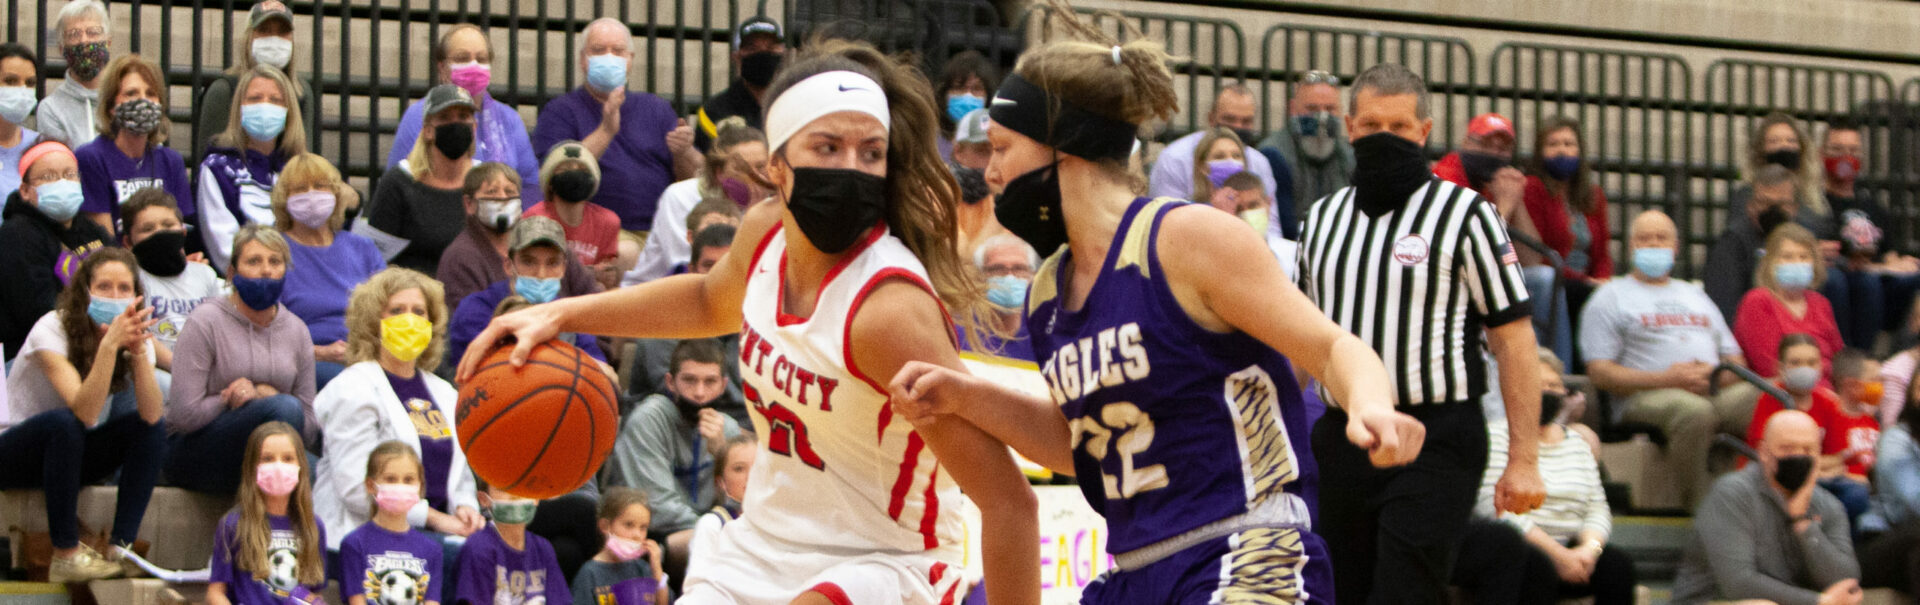 Kent City girls basketball team throttles Schoolcraft 52-19 in Division 3 quarterfinals, moves on to the state Final Four